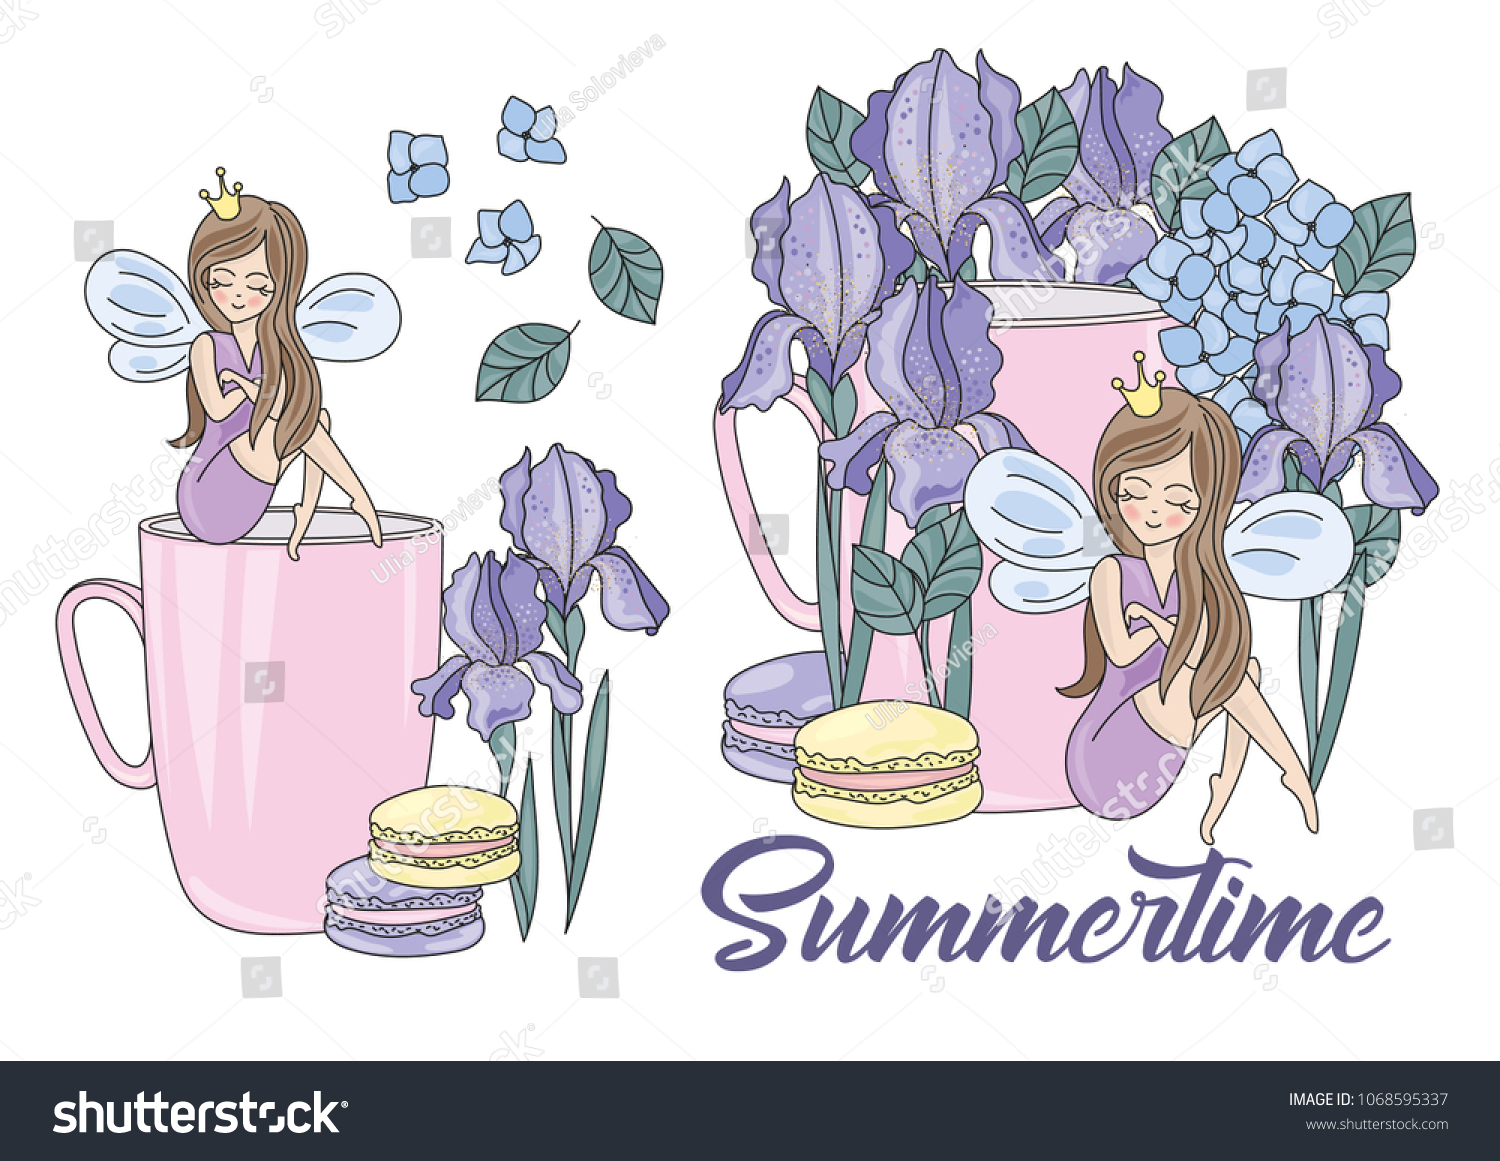 hight resolution of flower clipart summertime color vector illustration magic fairyland cartoon purple flower fairy princess wedding party set